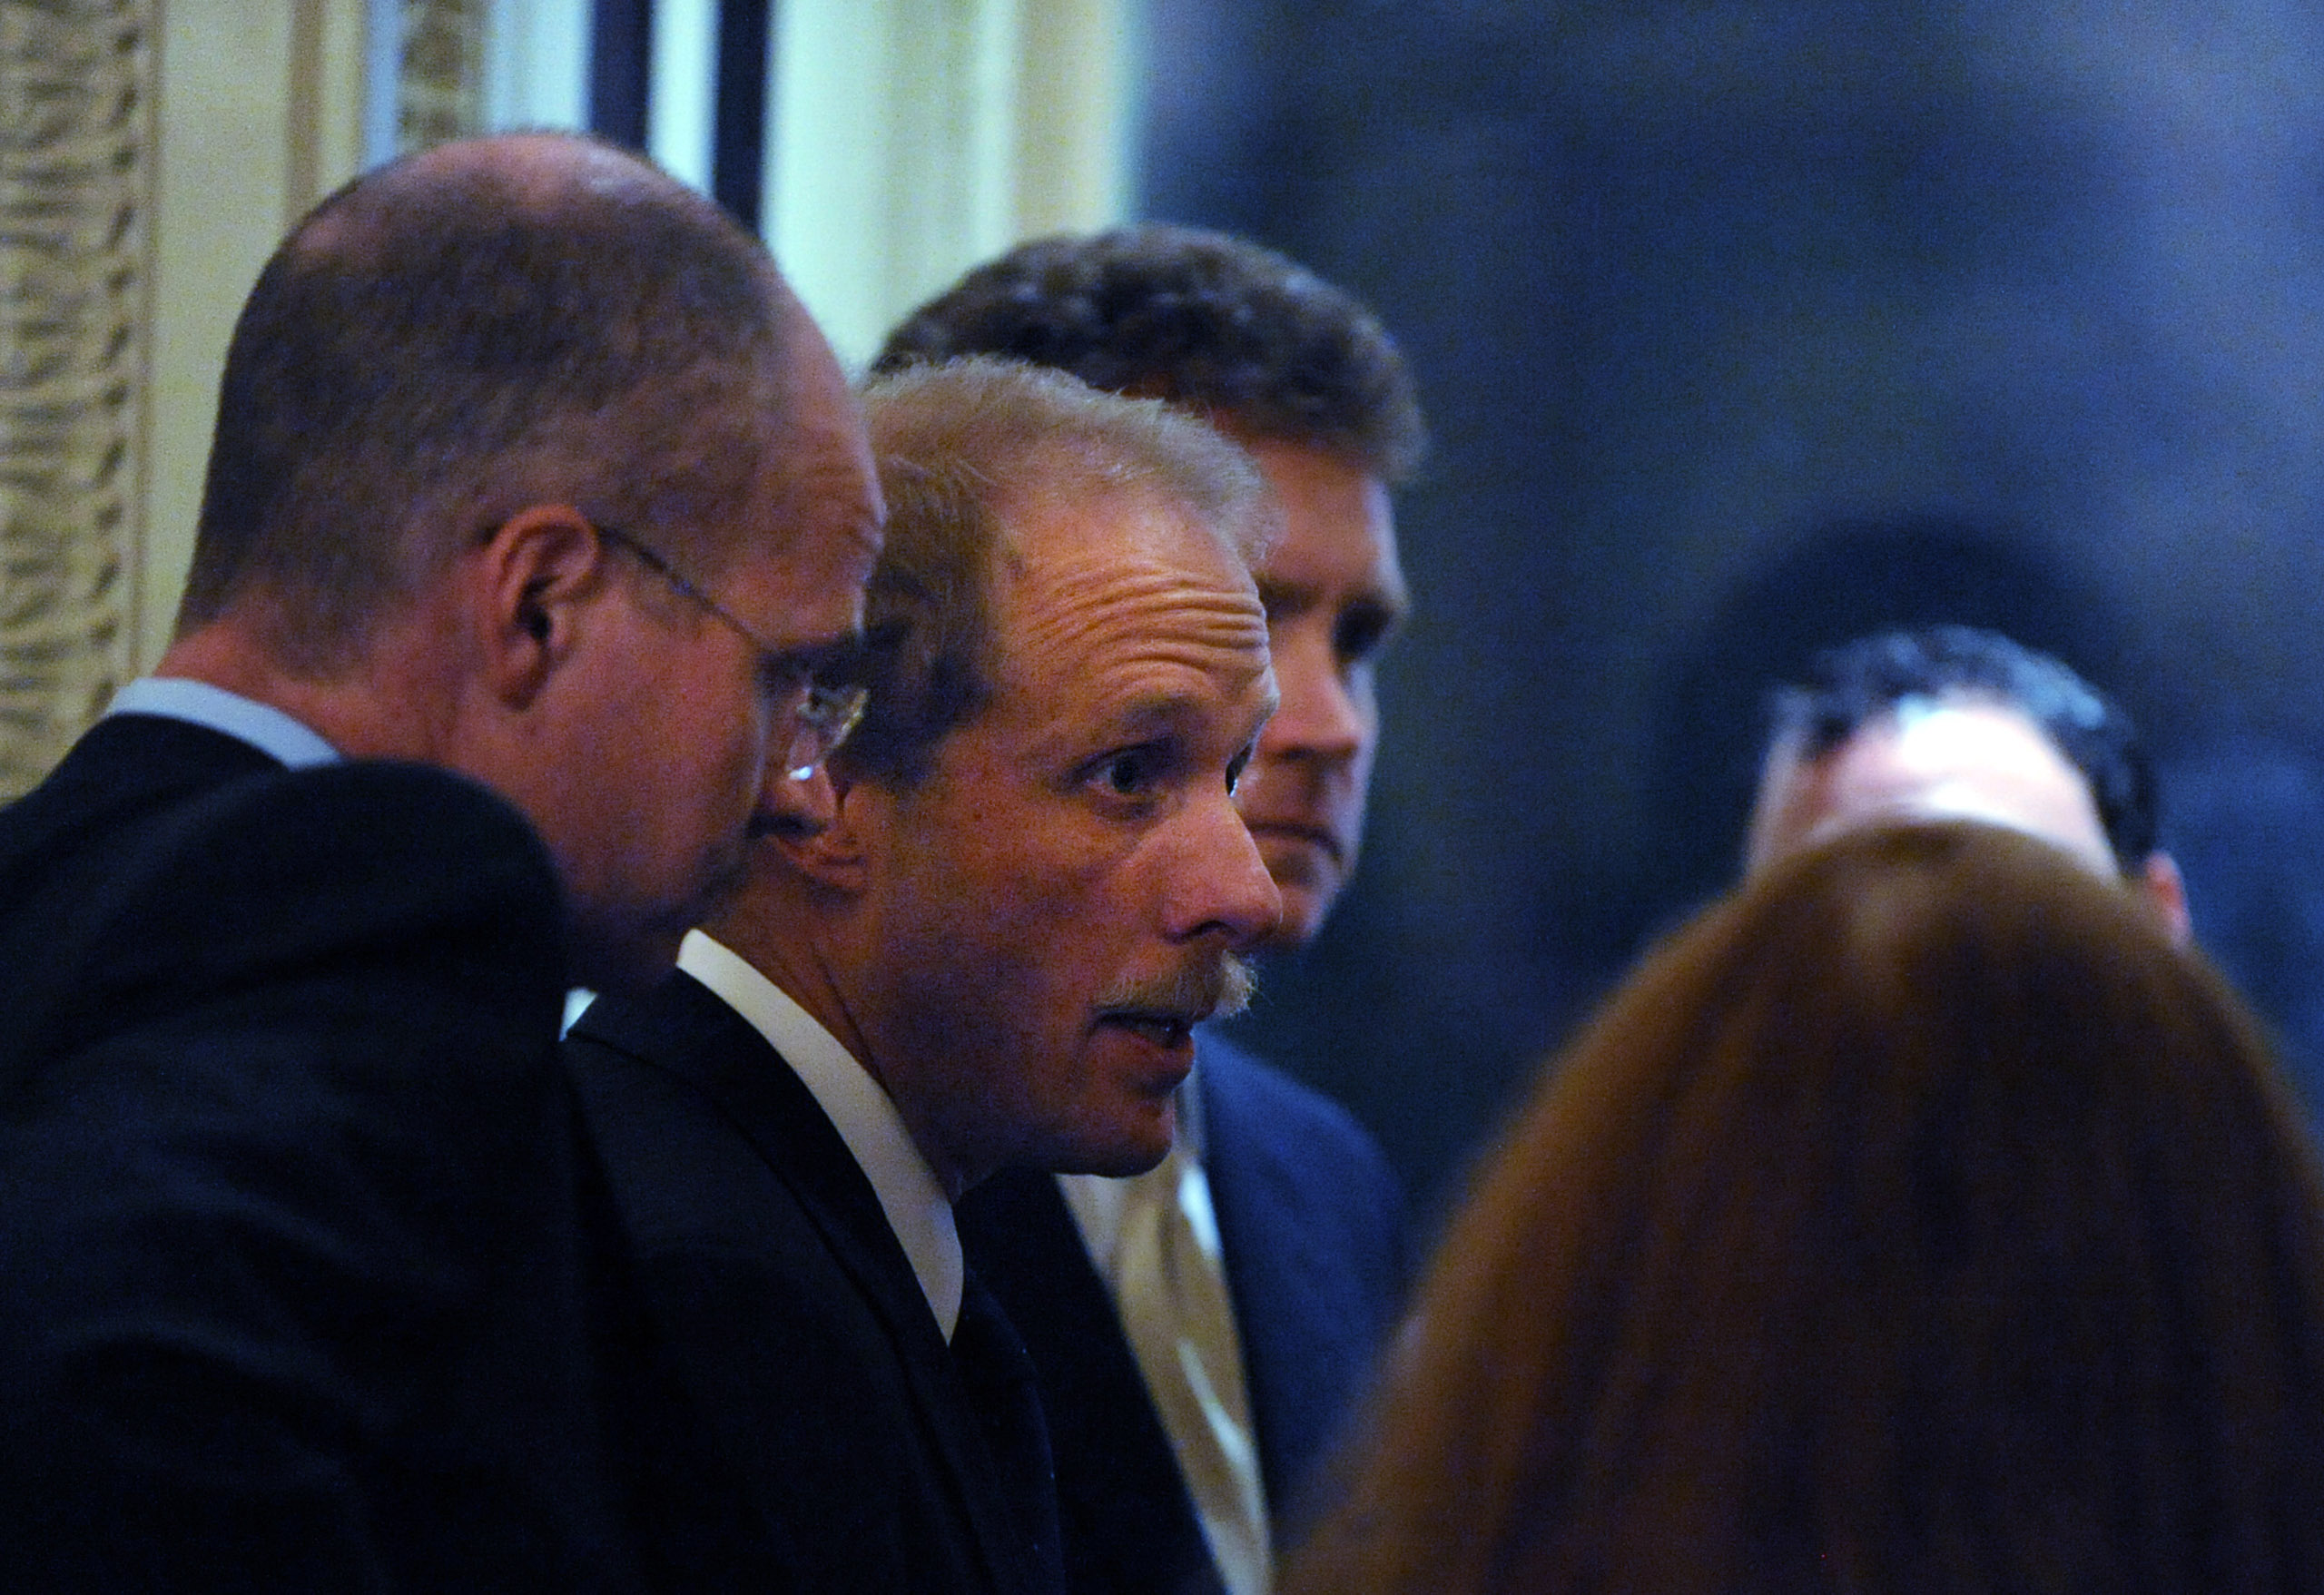 Stephen Feinberg (second from left), a participant in the auto bailout deal, convenes with his crew as lawmakers discuss the auto bailout bill at the US Capitol in Washington in 2008.